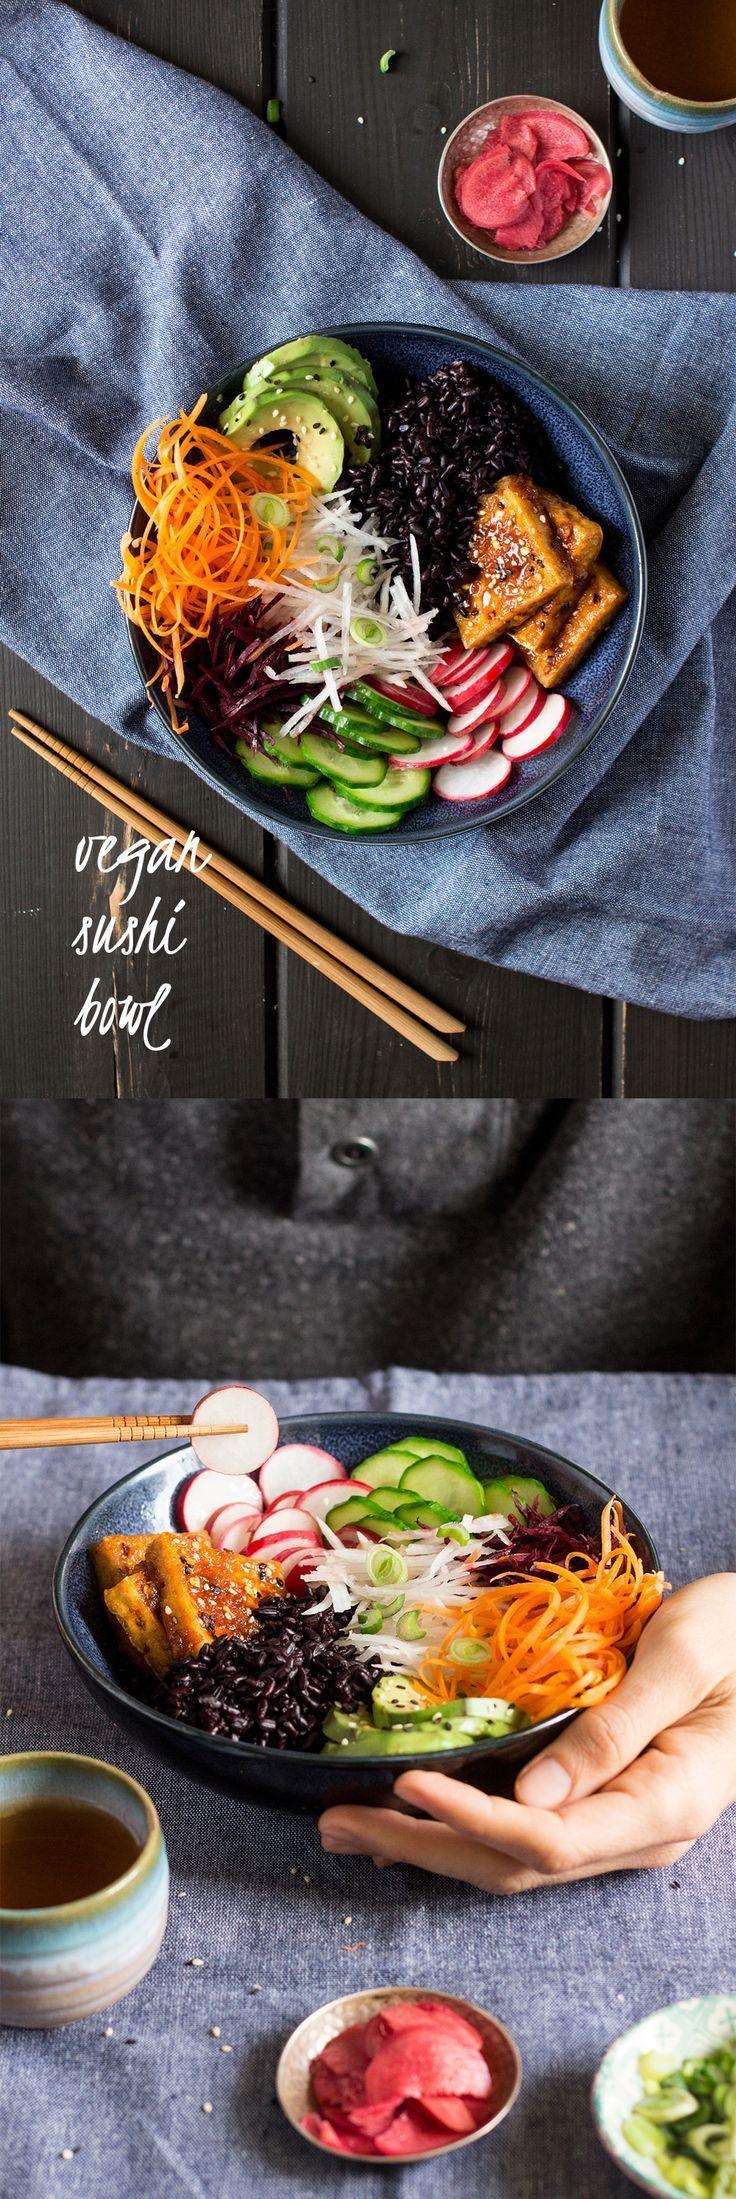 This #vegan and #glutenfree #sushi #bowl makes for a great #lunch, #healthy and #wellbalanced!  #recipe #recipes #vegetarian #salad #tofu